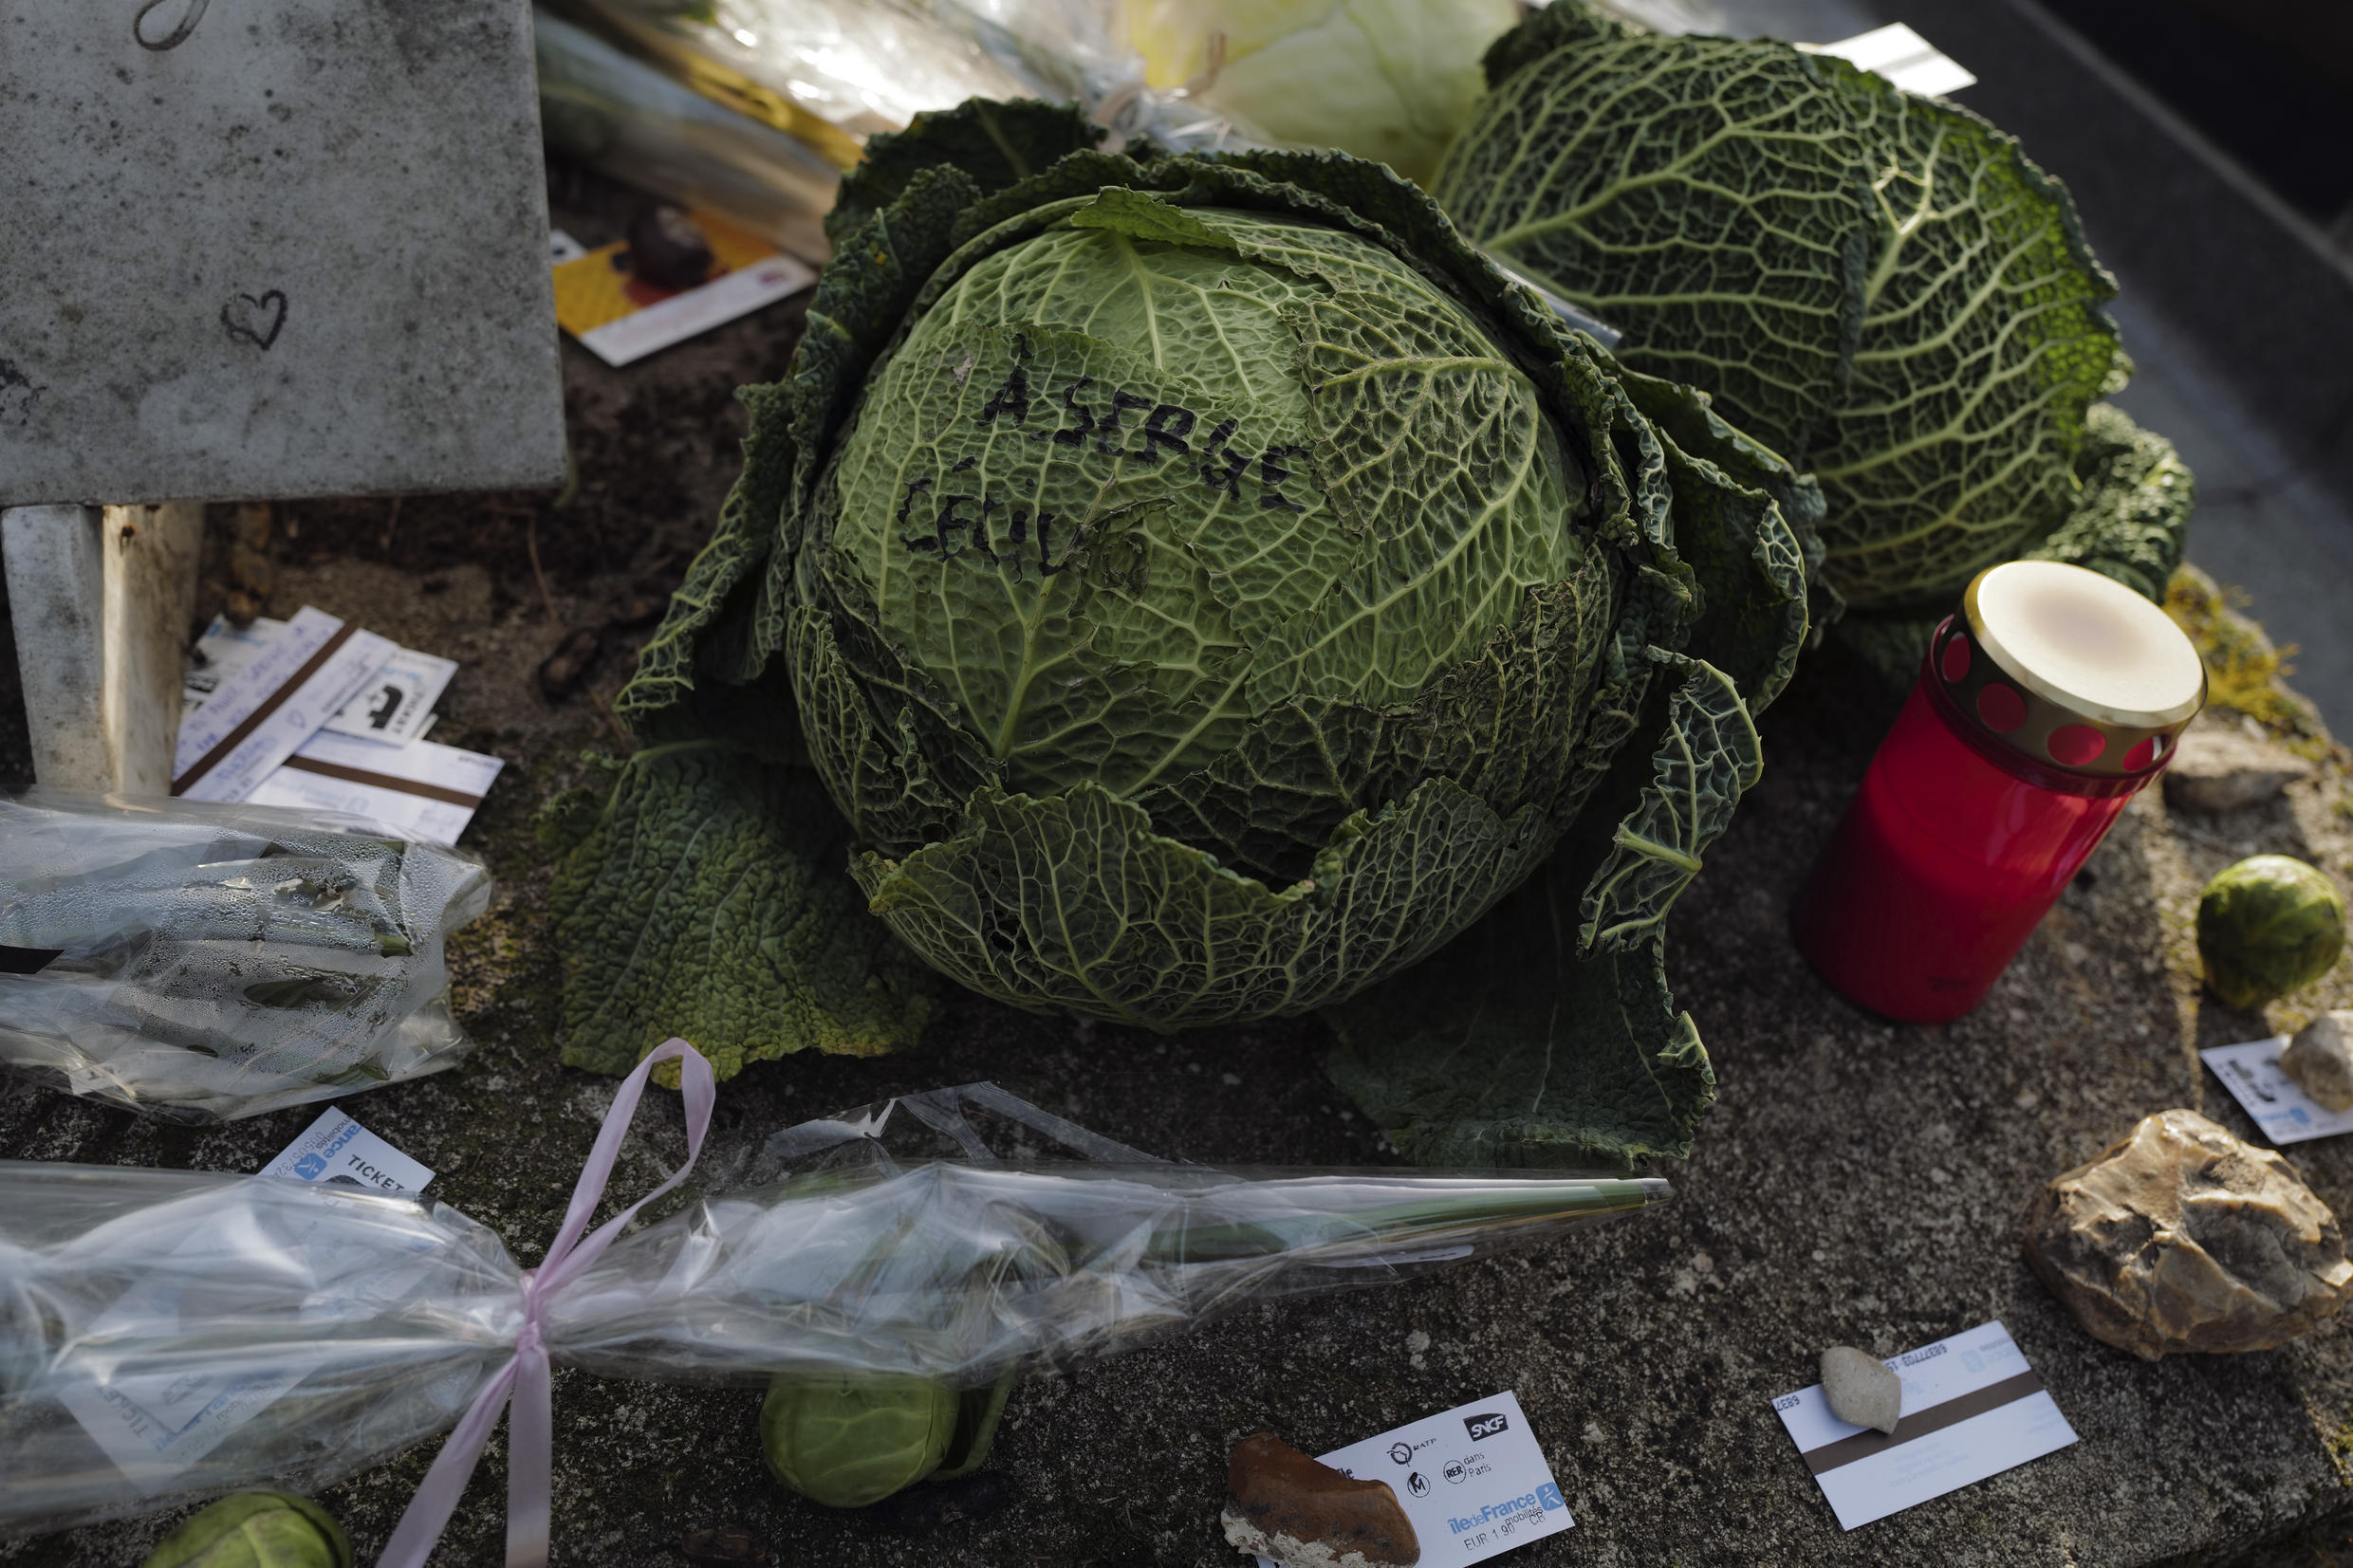 """Cabbages and subway tickets decorate the grave of late French musician, song writer and singer Serge Gainsbourg at Montparnasse cemetery in Paris, France, Tuesday March 2, 2021. Three decades after his death, Gainsbourg's music has reached legendary stature in France, and he has also gained a cult following in the English-speaking world with chart success in the United Kingdom and the United States with """"Je t'aime... moi non plus"""" and """"Bonnie and Clyde"""", respectively."""